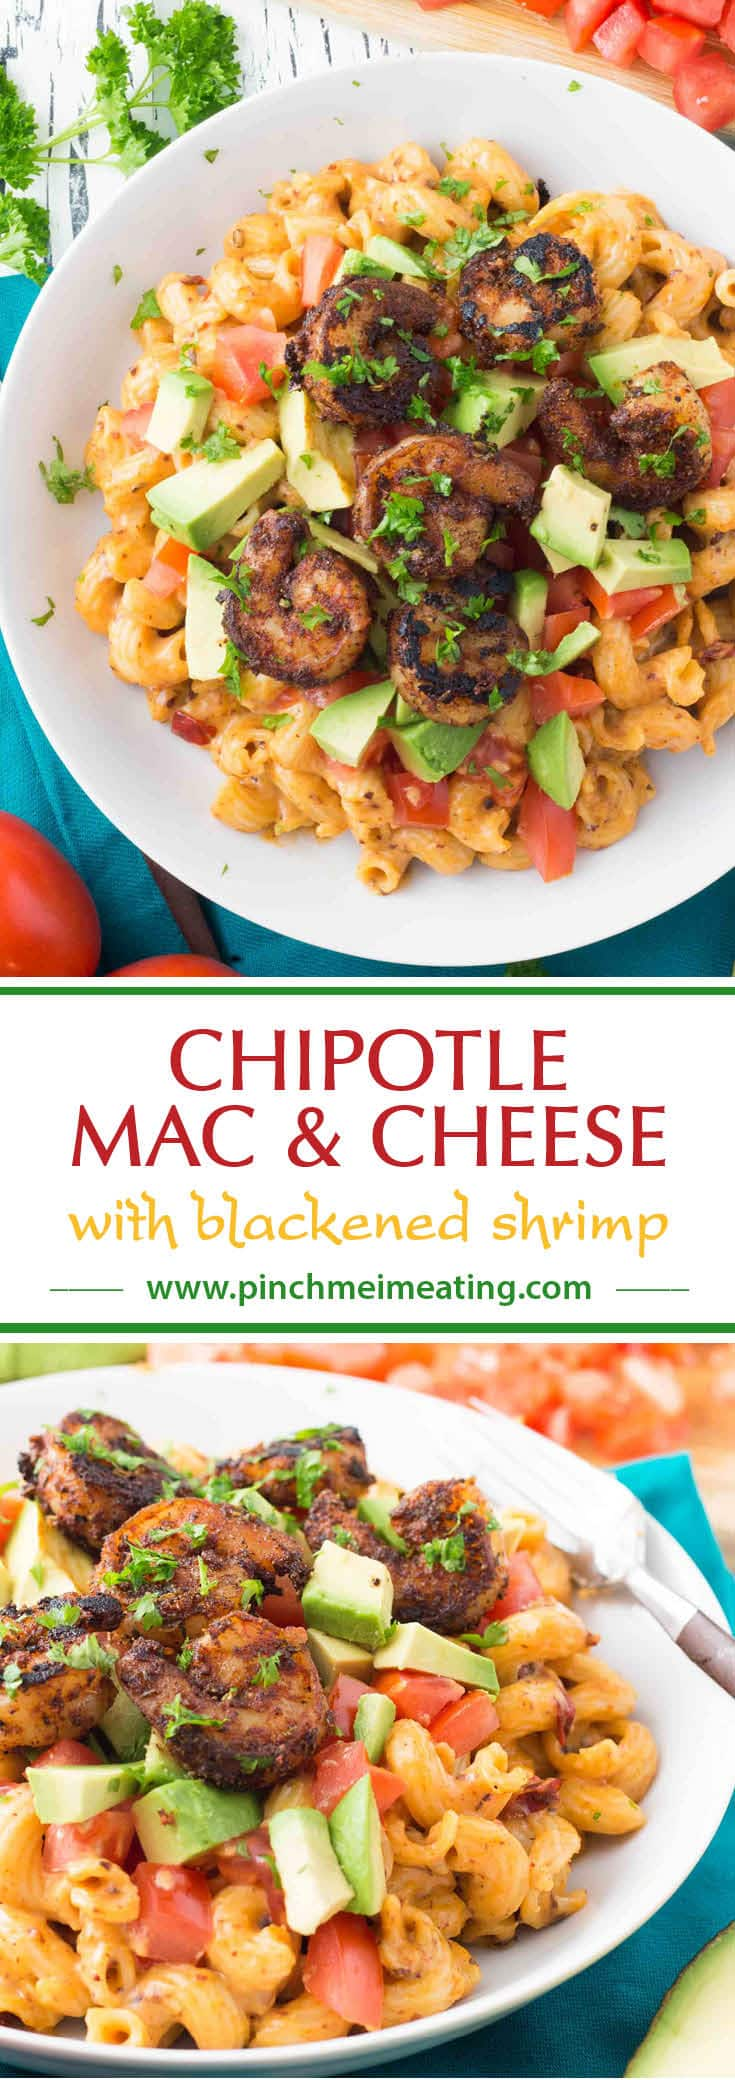 Chipotle mac and cheese is topped with blackened shrimp, fresh tomato and avocado for a colorful contrast of flavors and textures. This dish presents beautifully for company and is simple enough for a weeknight dinner! #easymeals #spicy #weeknightdinner #pasta